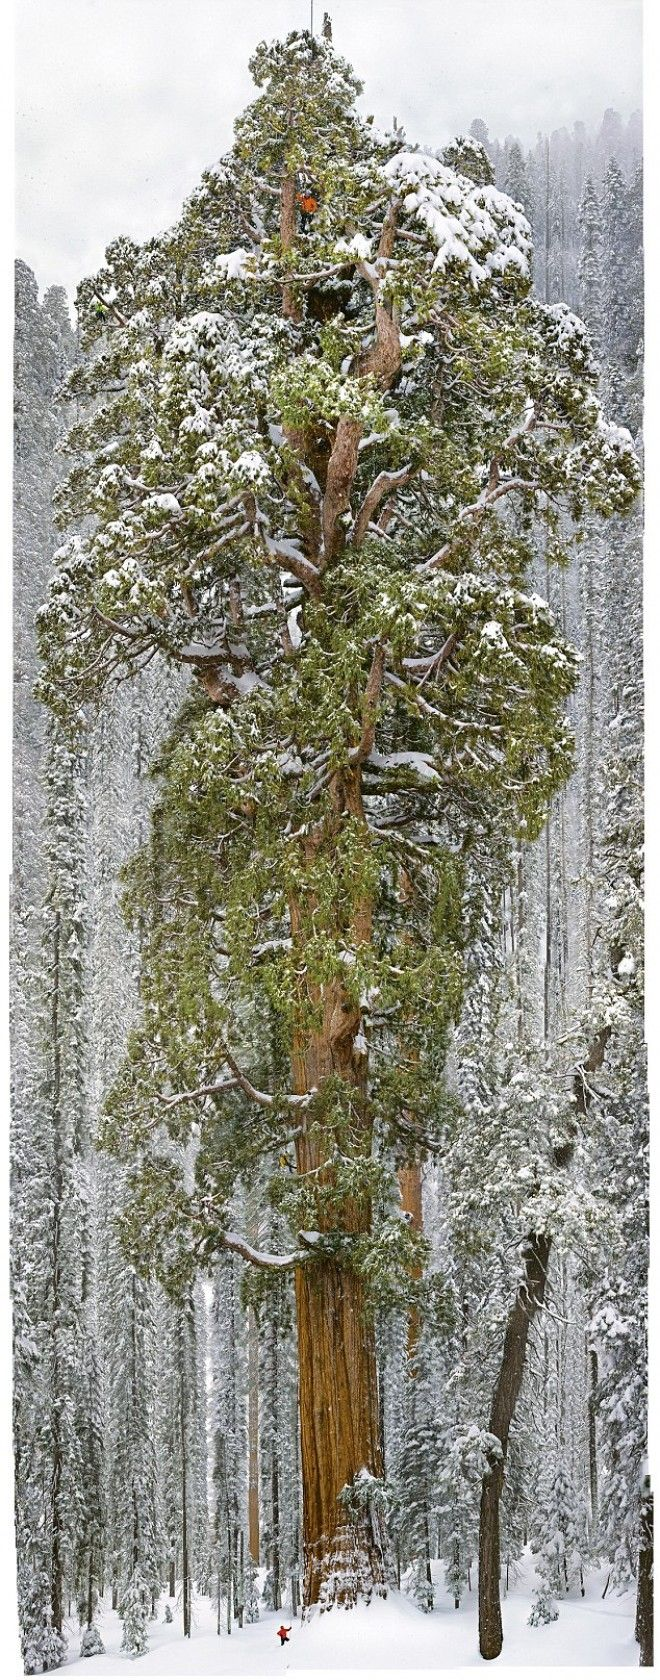 3,200 Year Old Tree Is So Massive It's Never Been Captured In A Single Image. Until Now. THE MIND UNLEASHED